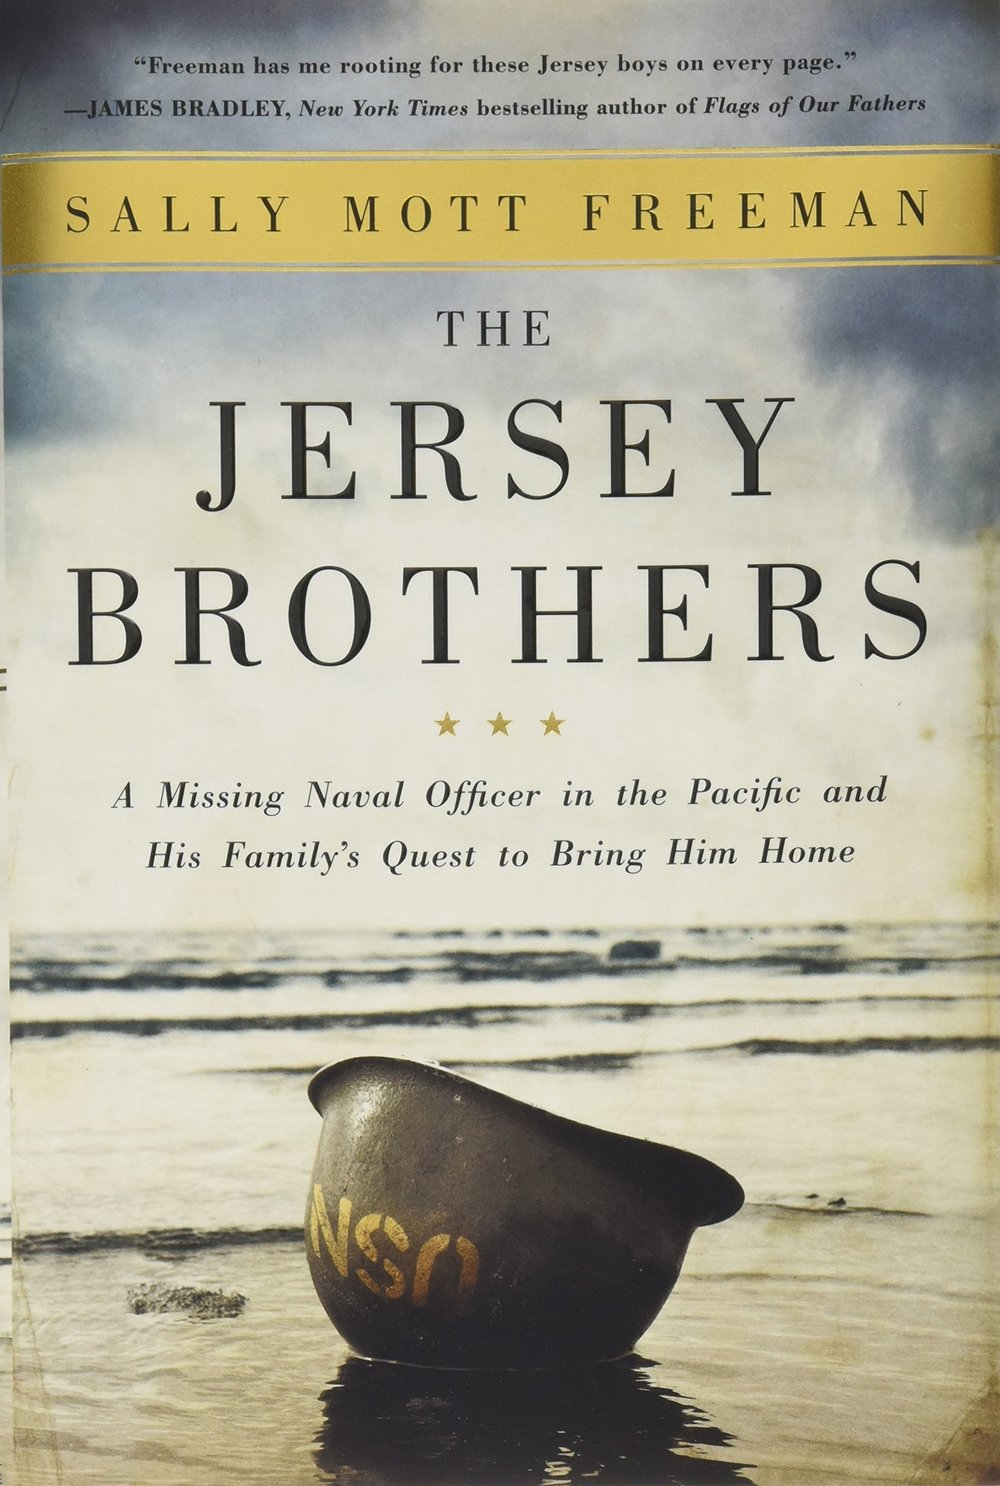 Copy of The Jersey Brothers: A Missing Naval Officer in the Pacific and His Family's Quest to Bring Him Home